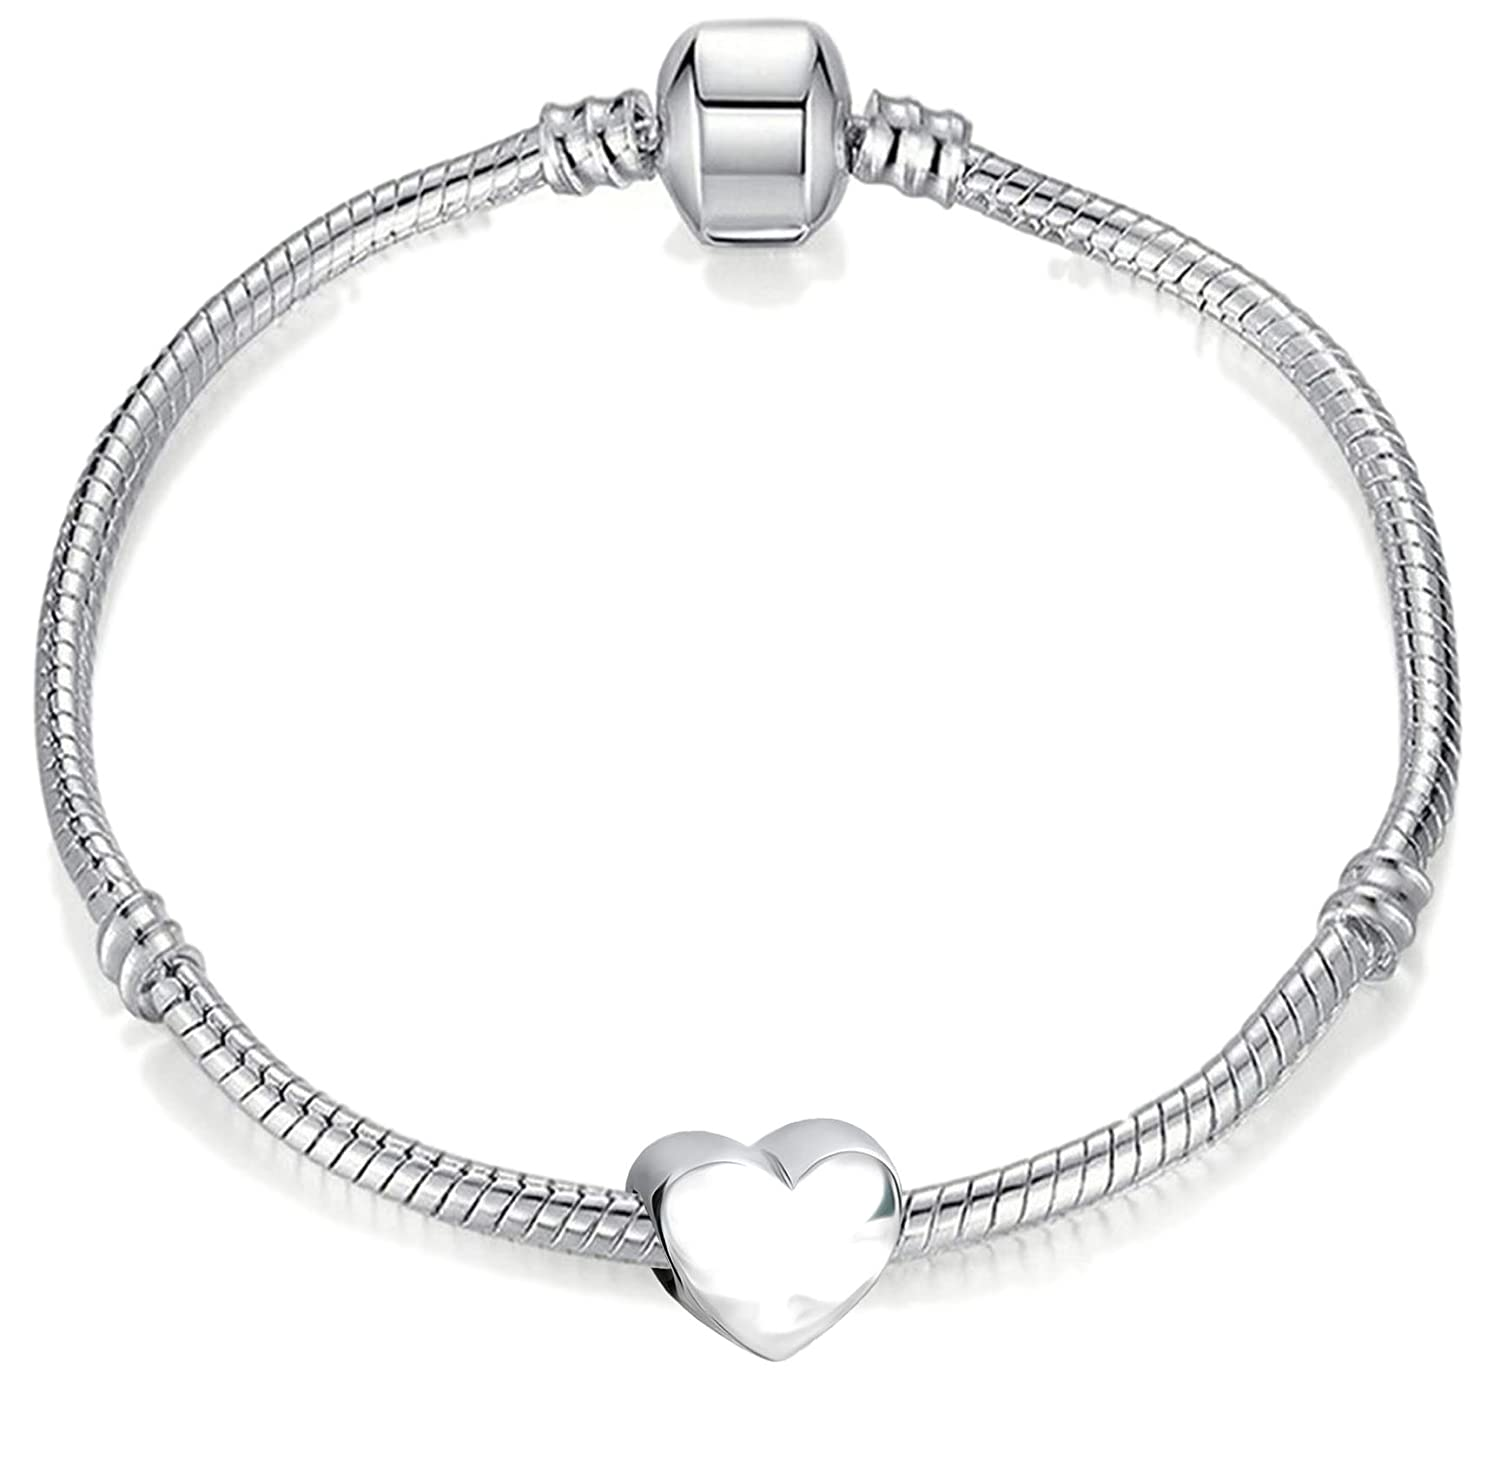 15cm Young Girls Starter Charm Bracelet with Silver Heart and Gift Box for Age 3-5 Years Charm Buddy Charm Buddy ® CBY: #15cm Silver--.